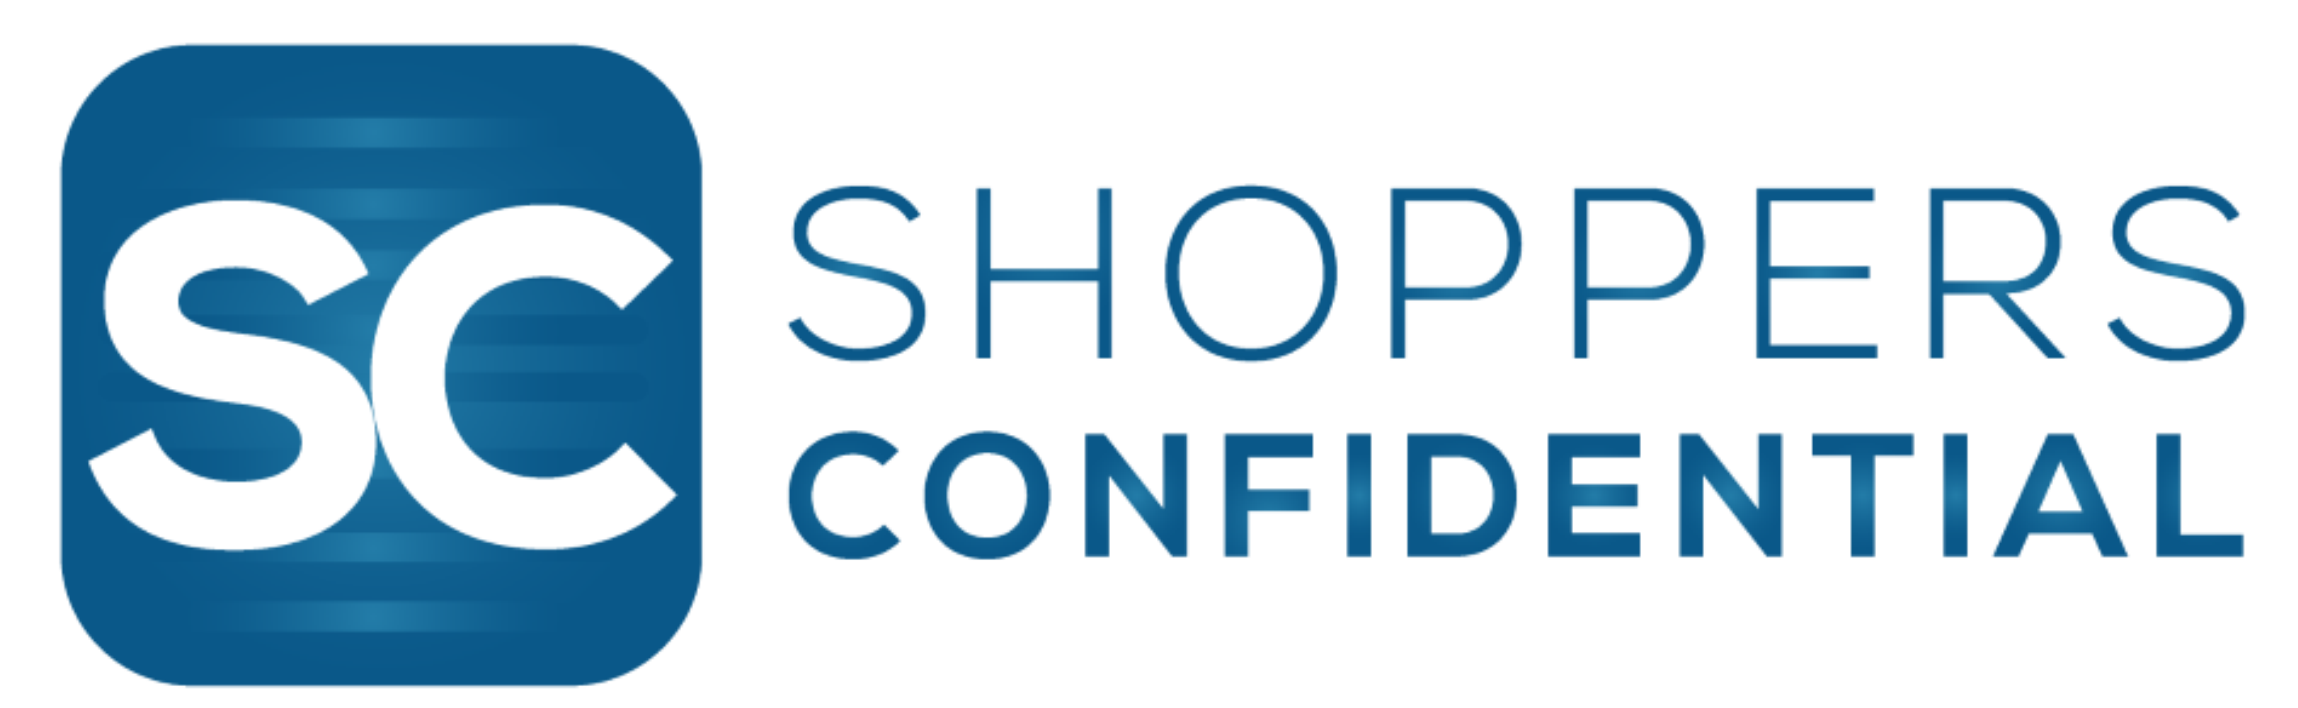 Shoppers-Confidential-Logo